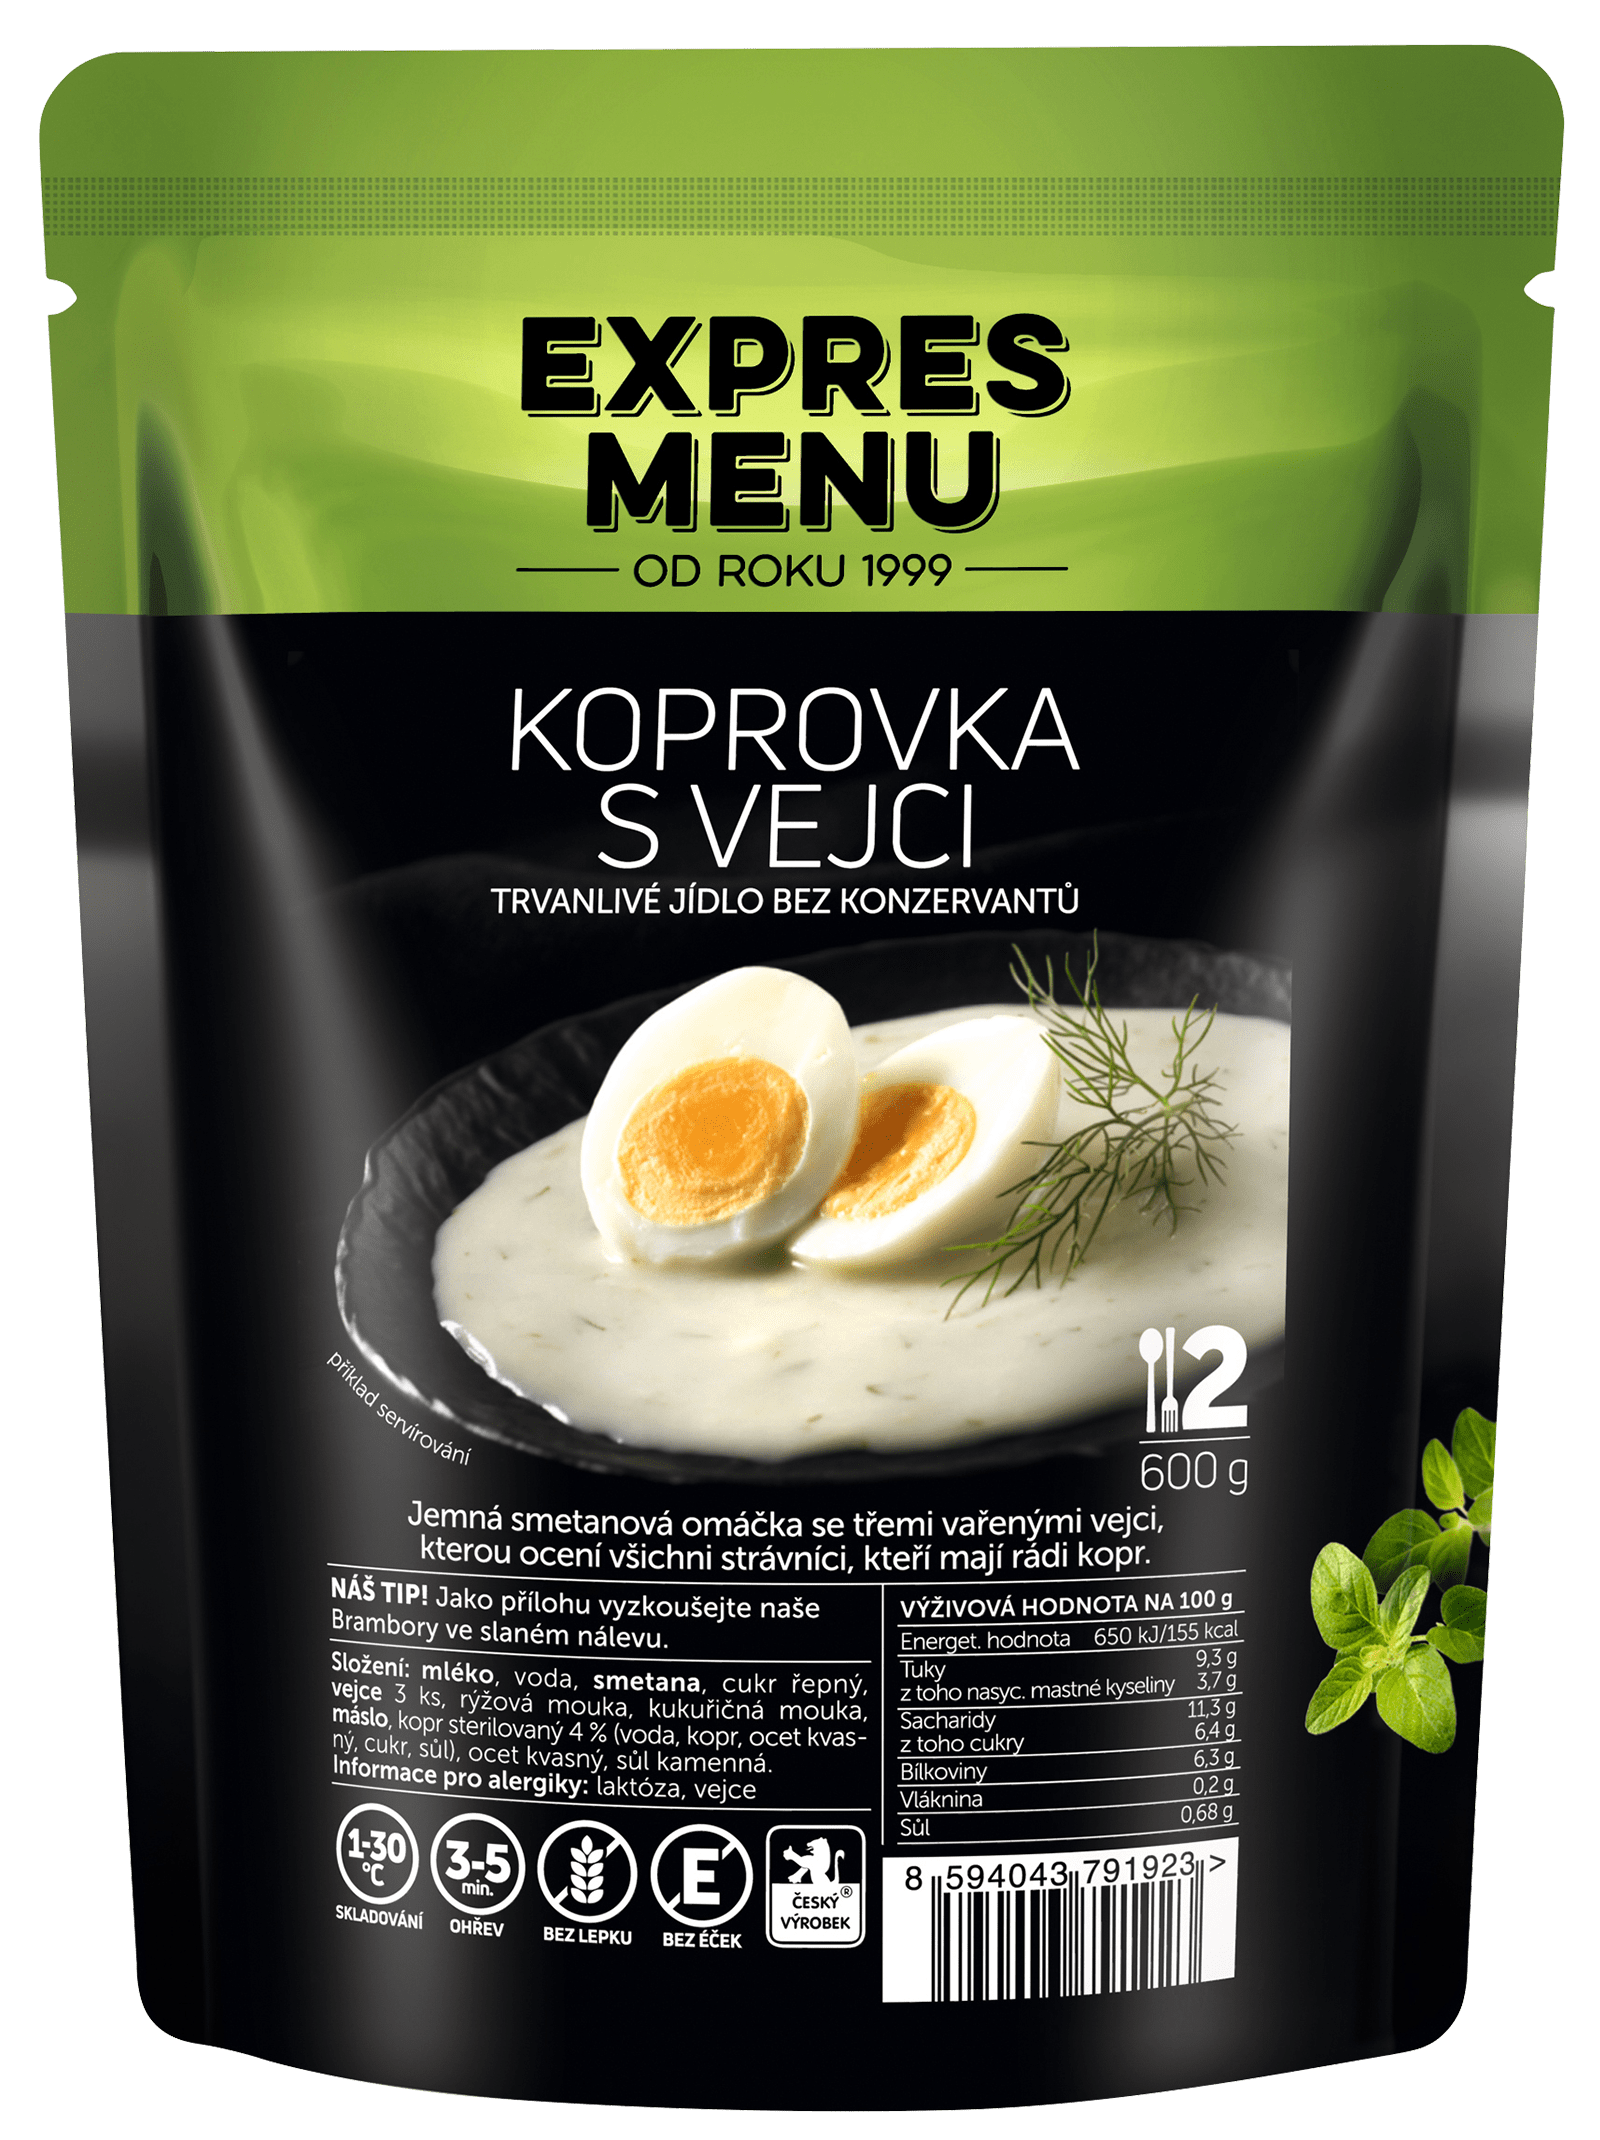 KOPROVKA S VEJCI 600G (2 PORCE)